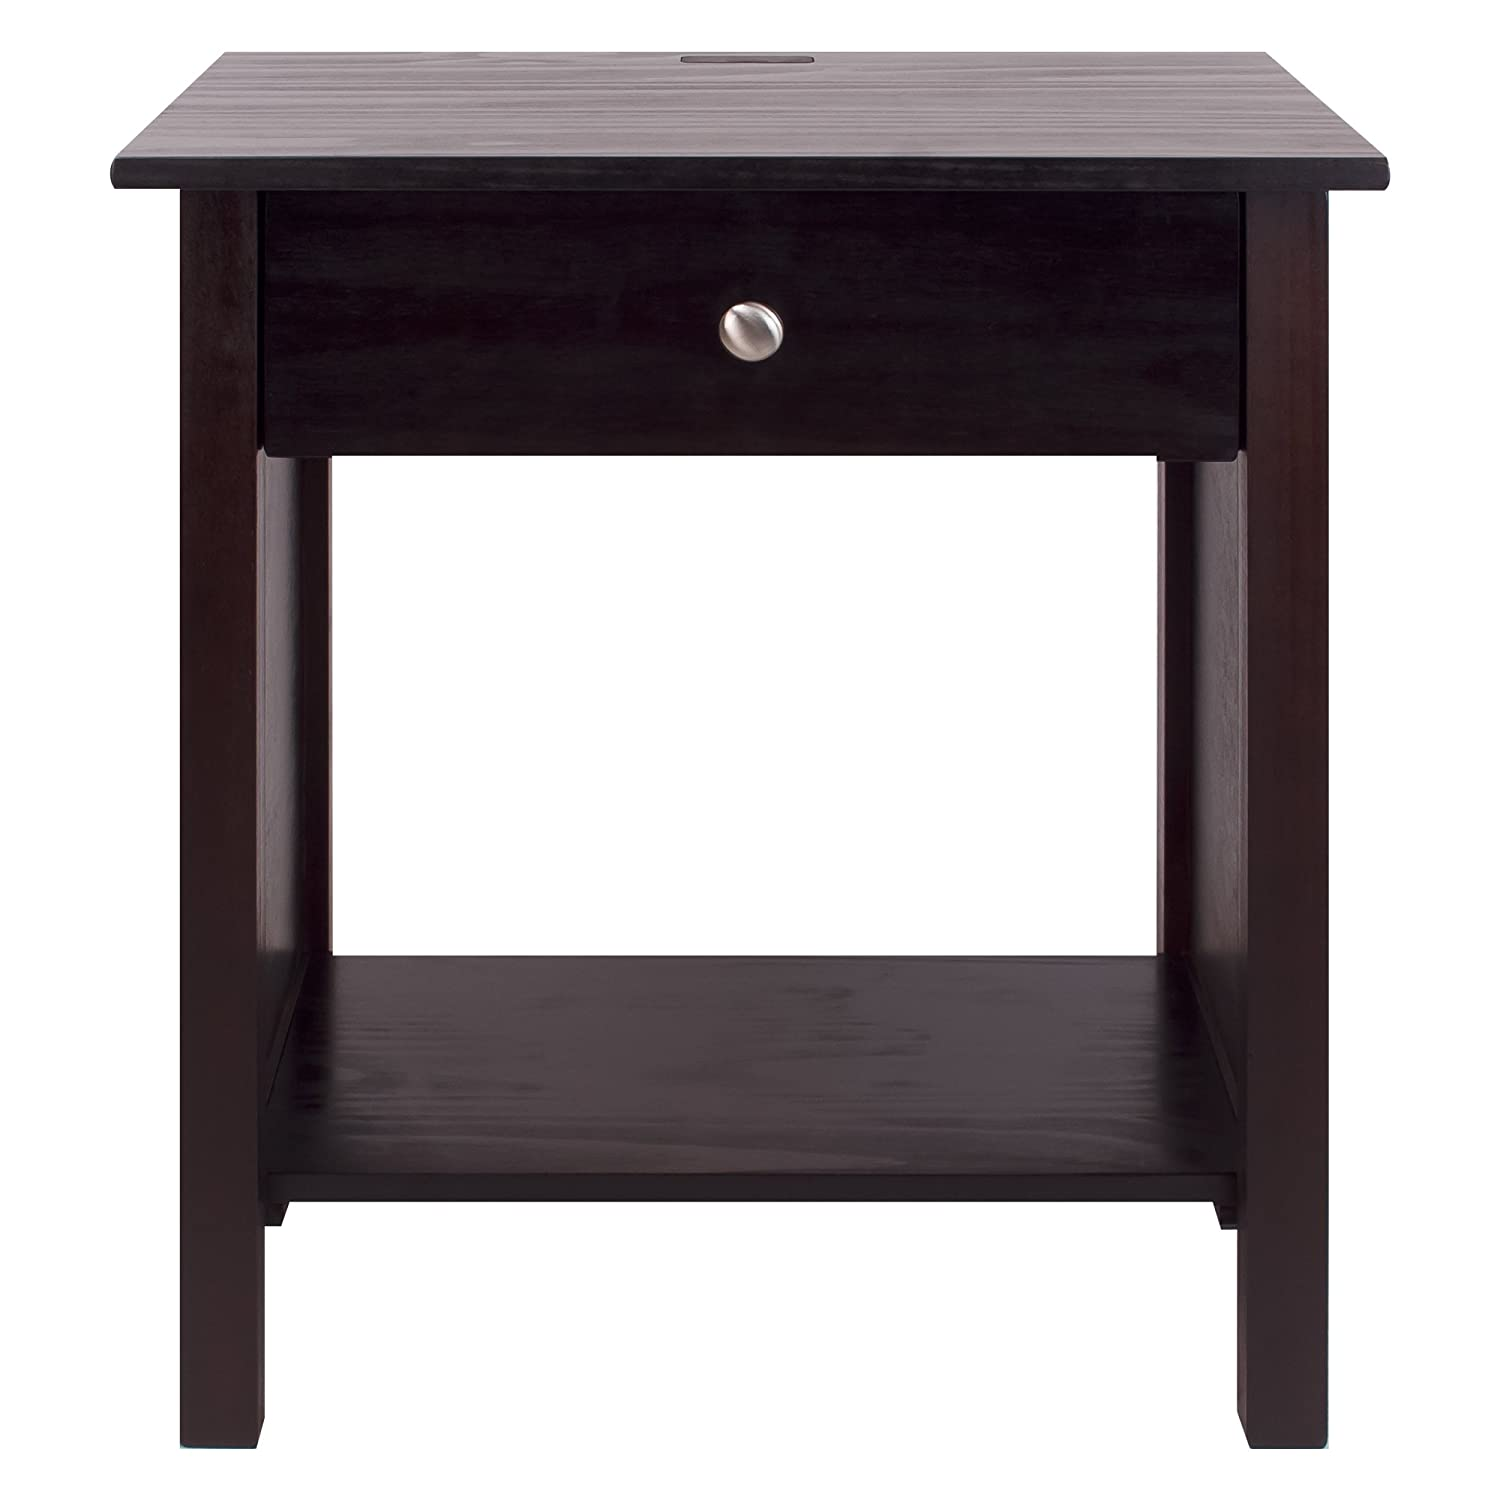 Amazoncom Casual Home 36023 Vanderbilt Nightstand with USB Ports